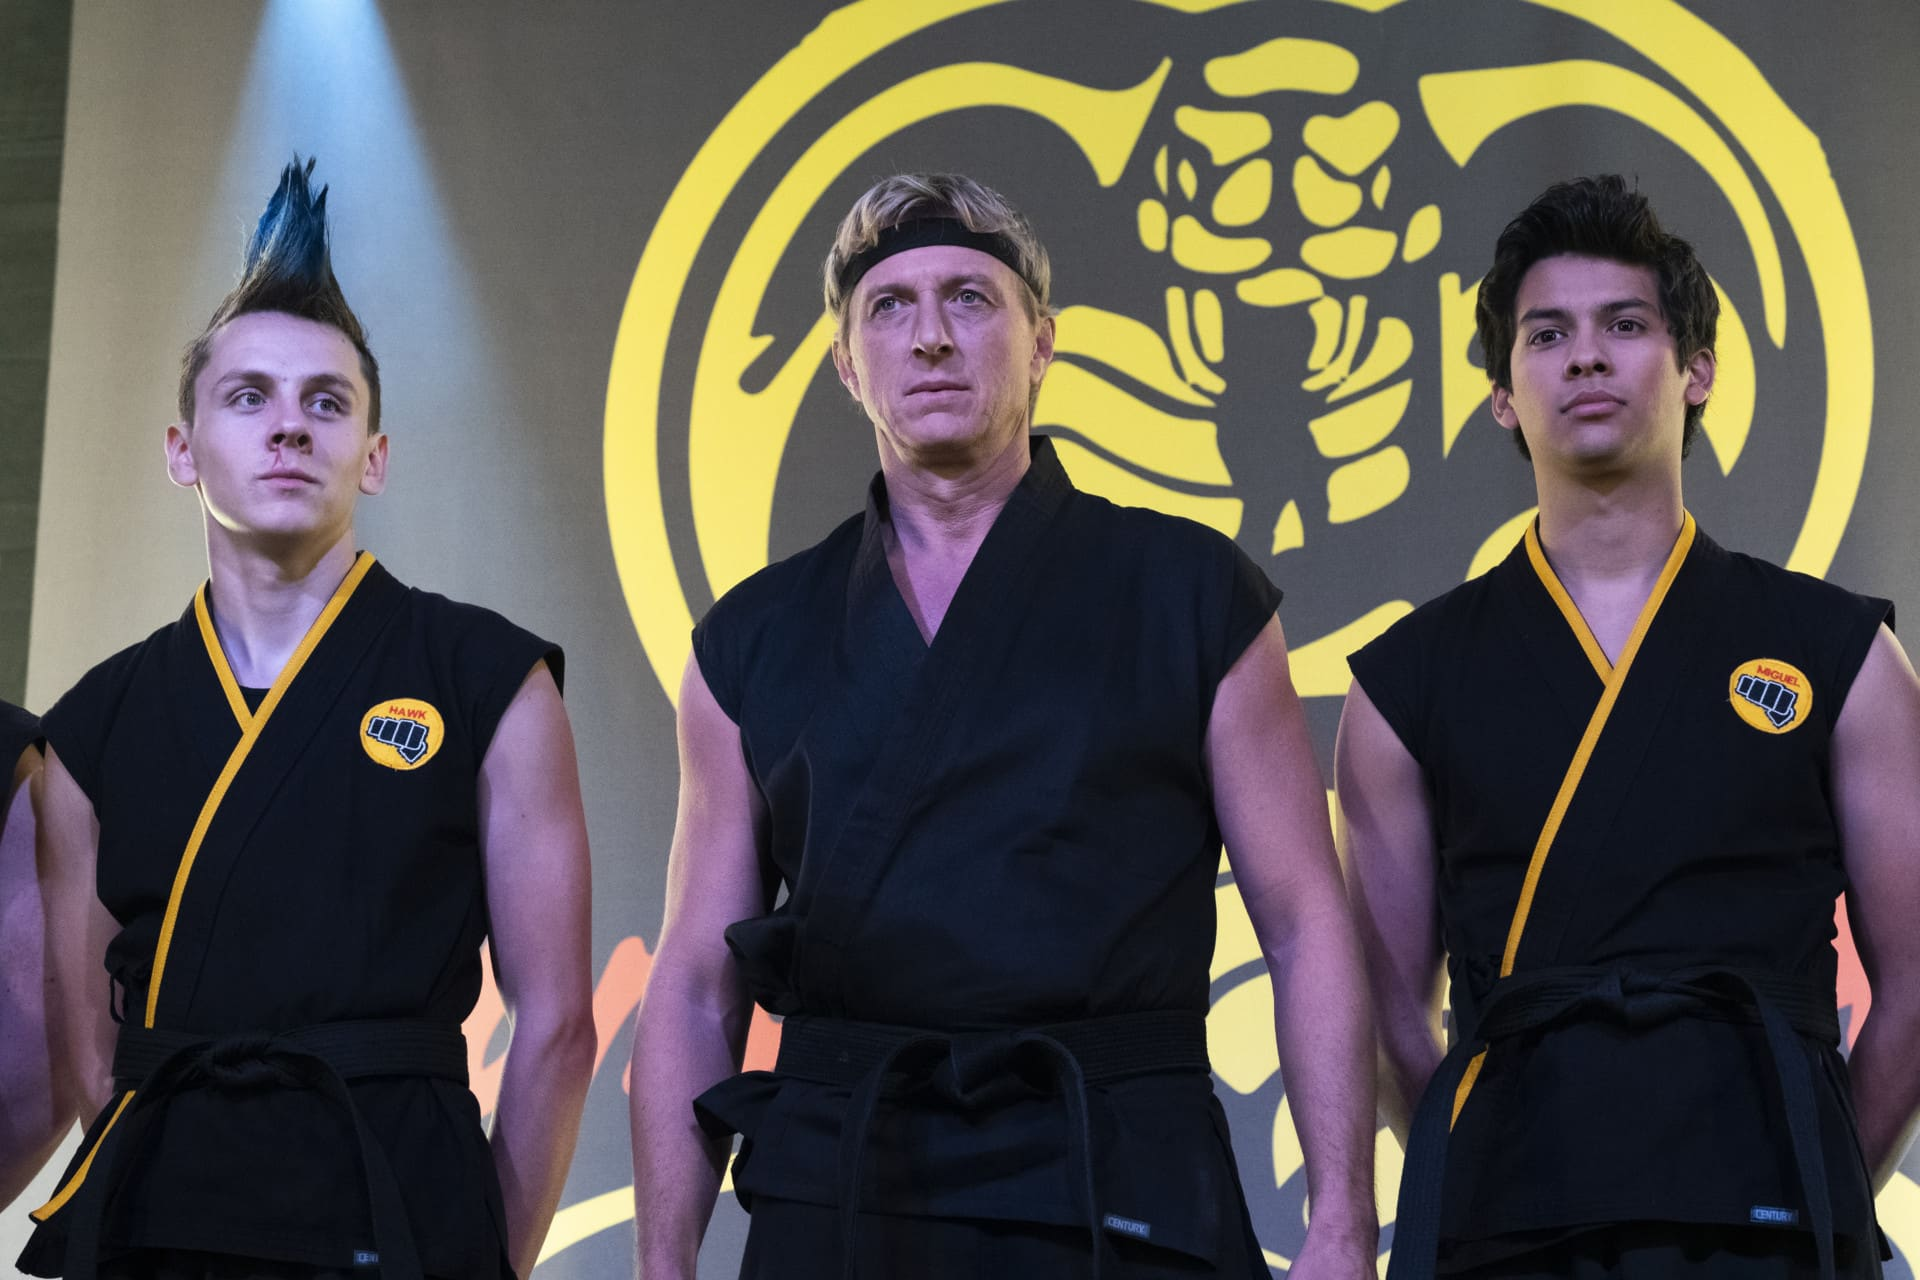 Cobra Kai May Be One of the Last Shows to Benefit from the Netflix Bump as easily acquired and mined content fades out